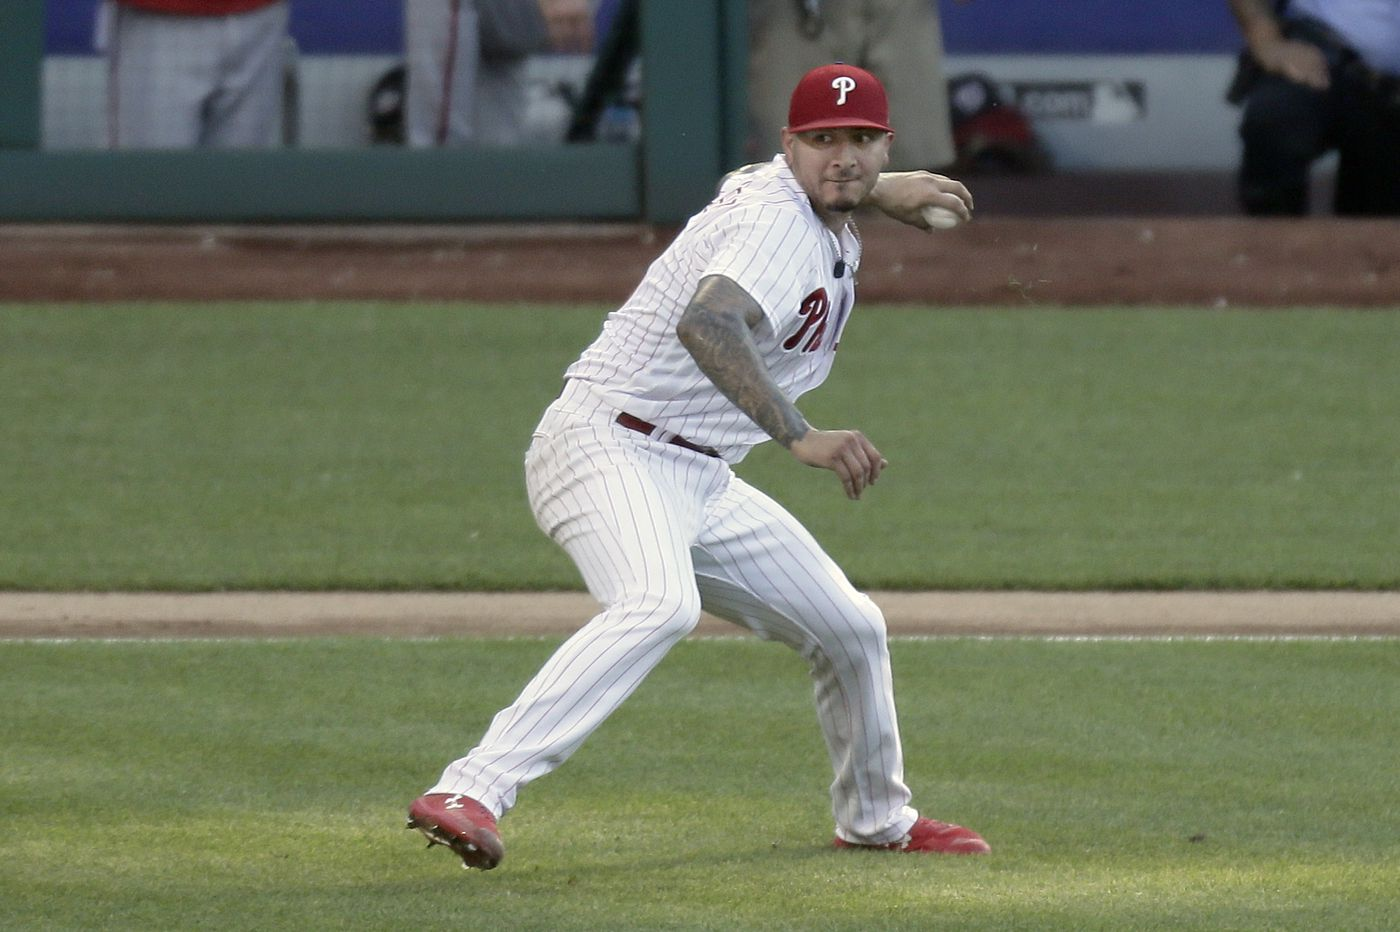 Phillies pitcher Vince Velasquez can throw with either hand. What does that say about his brain?